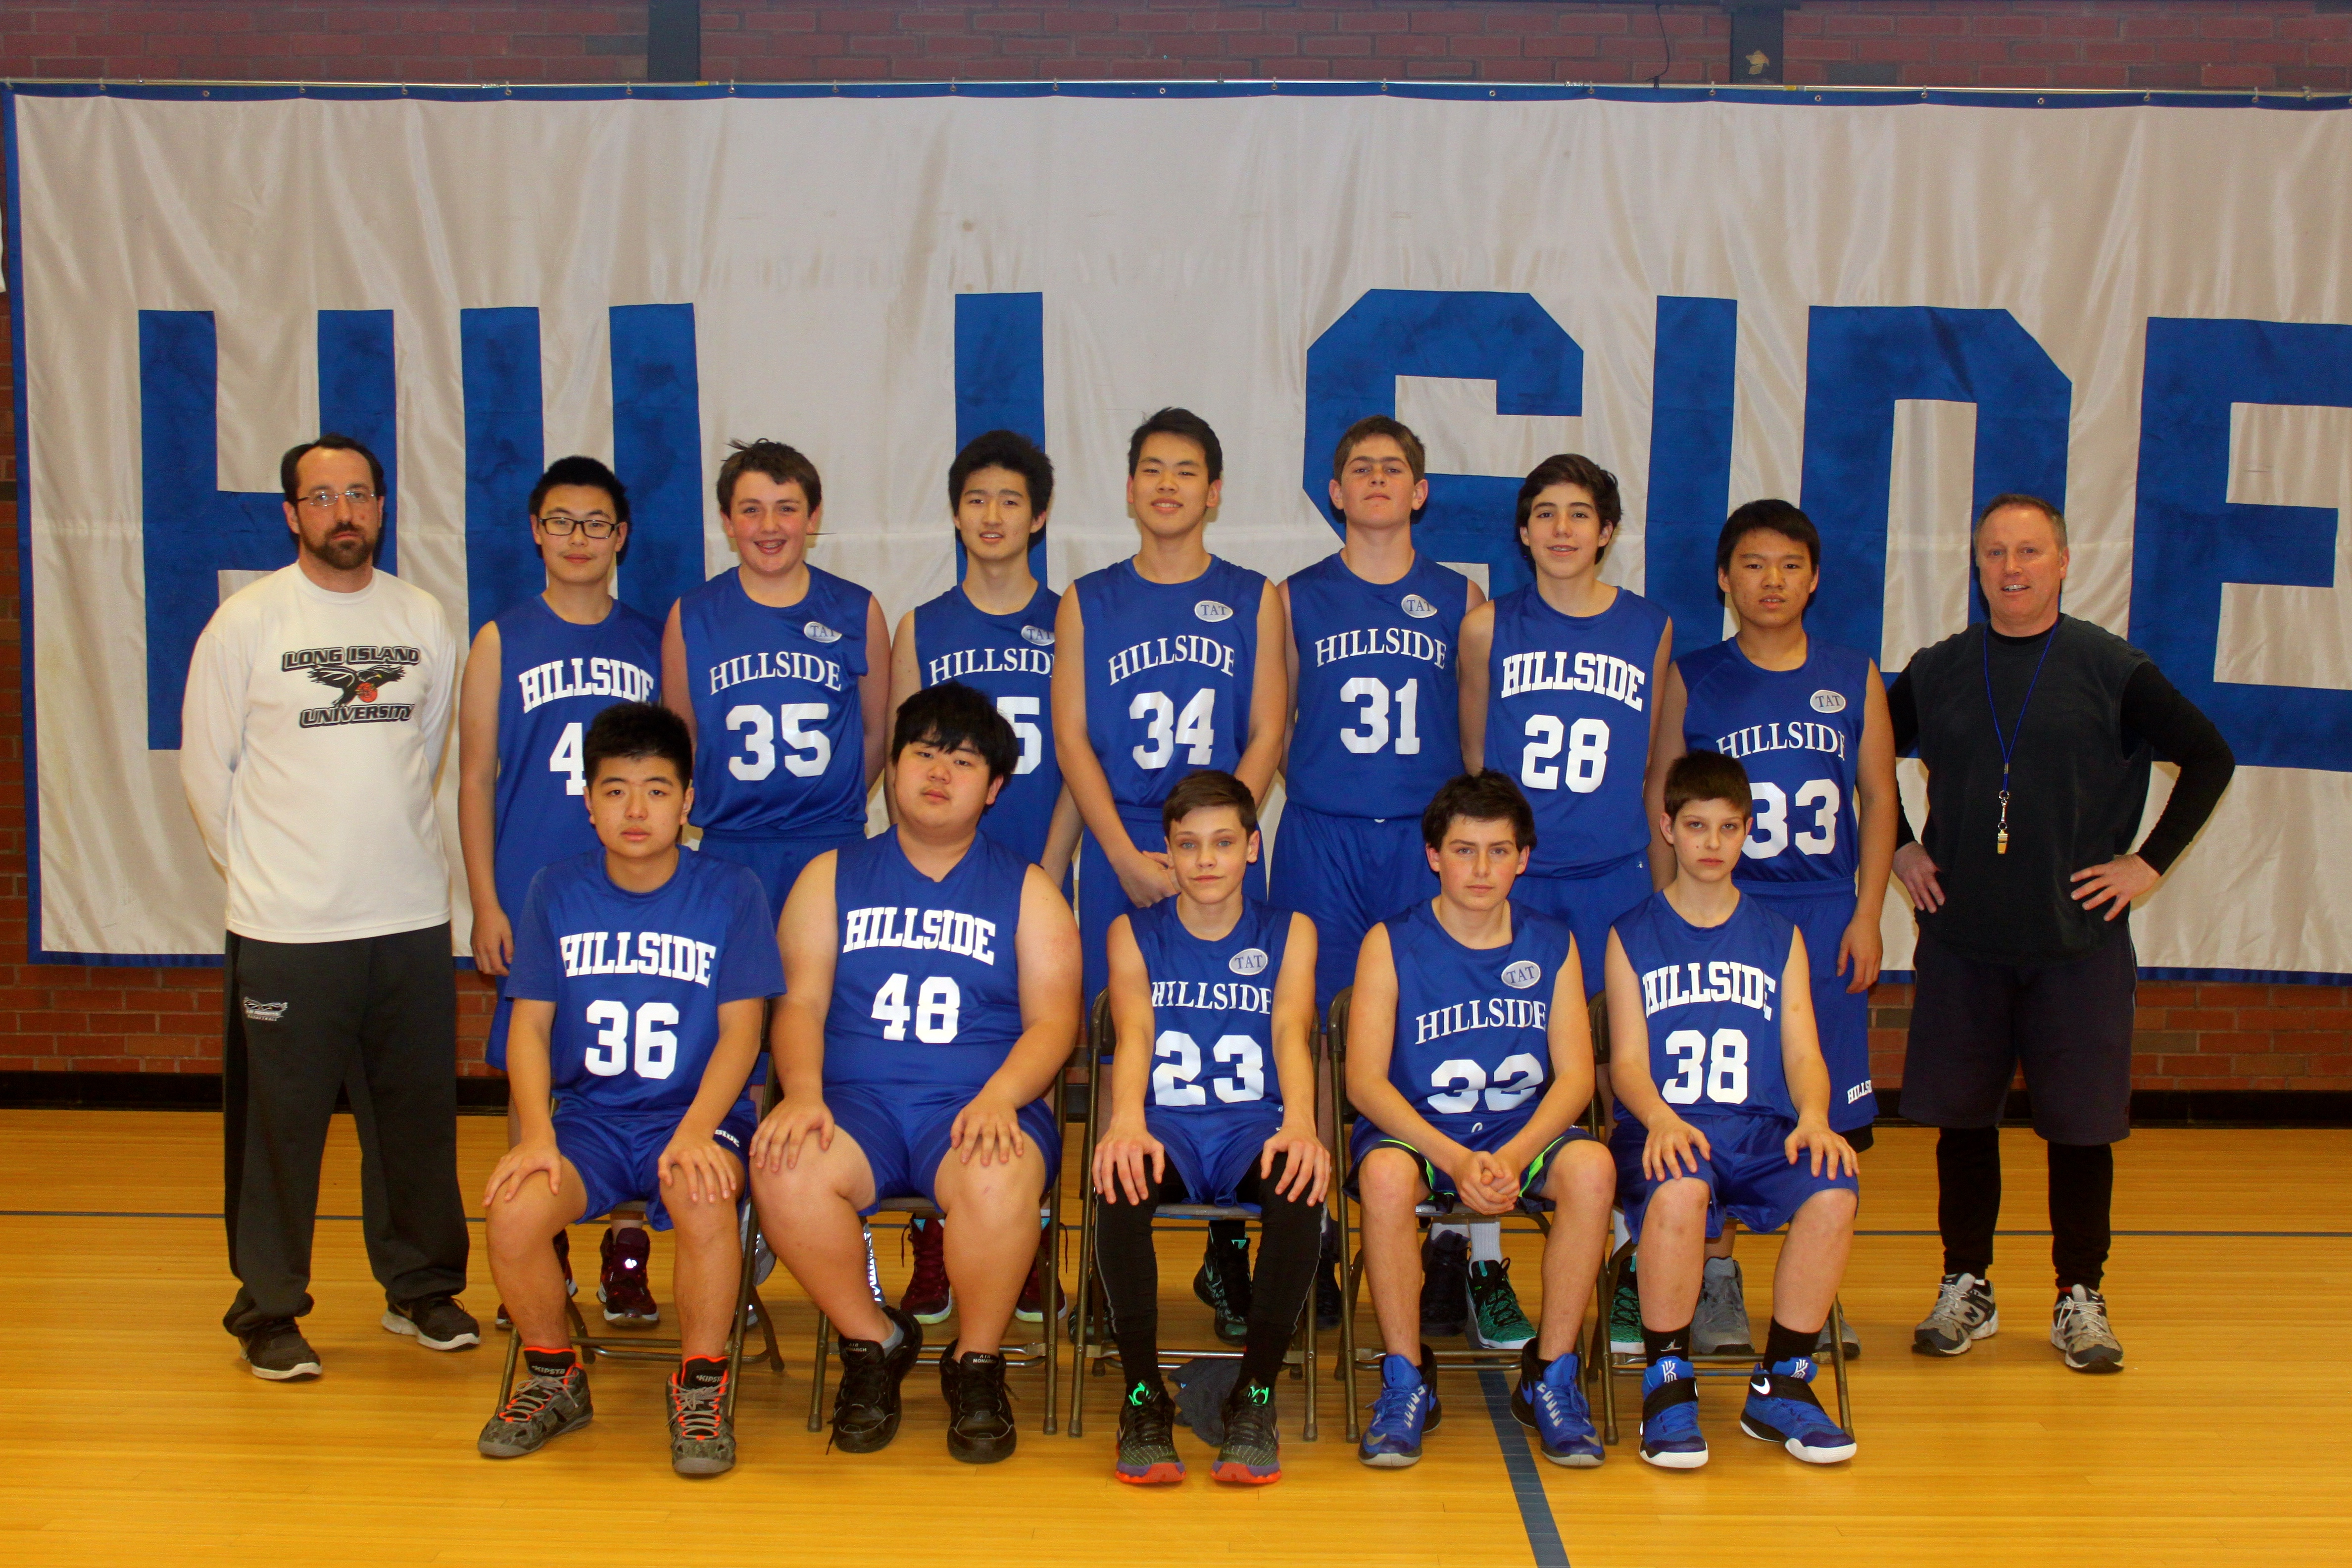 Hillside School JV Basketball team